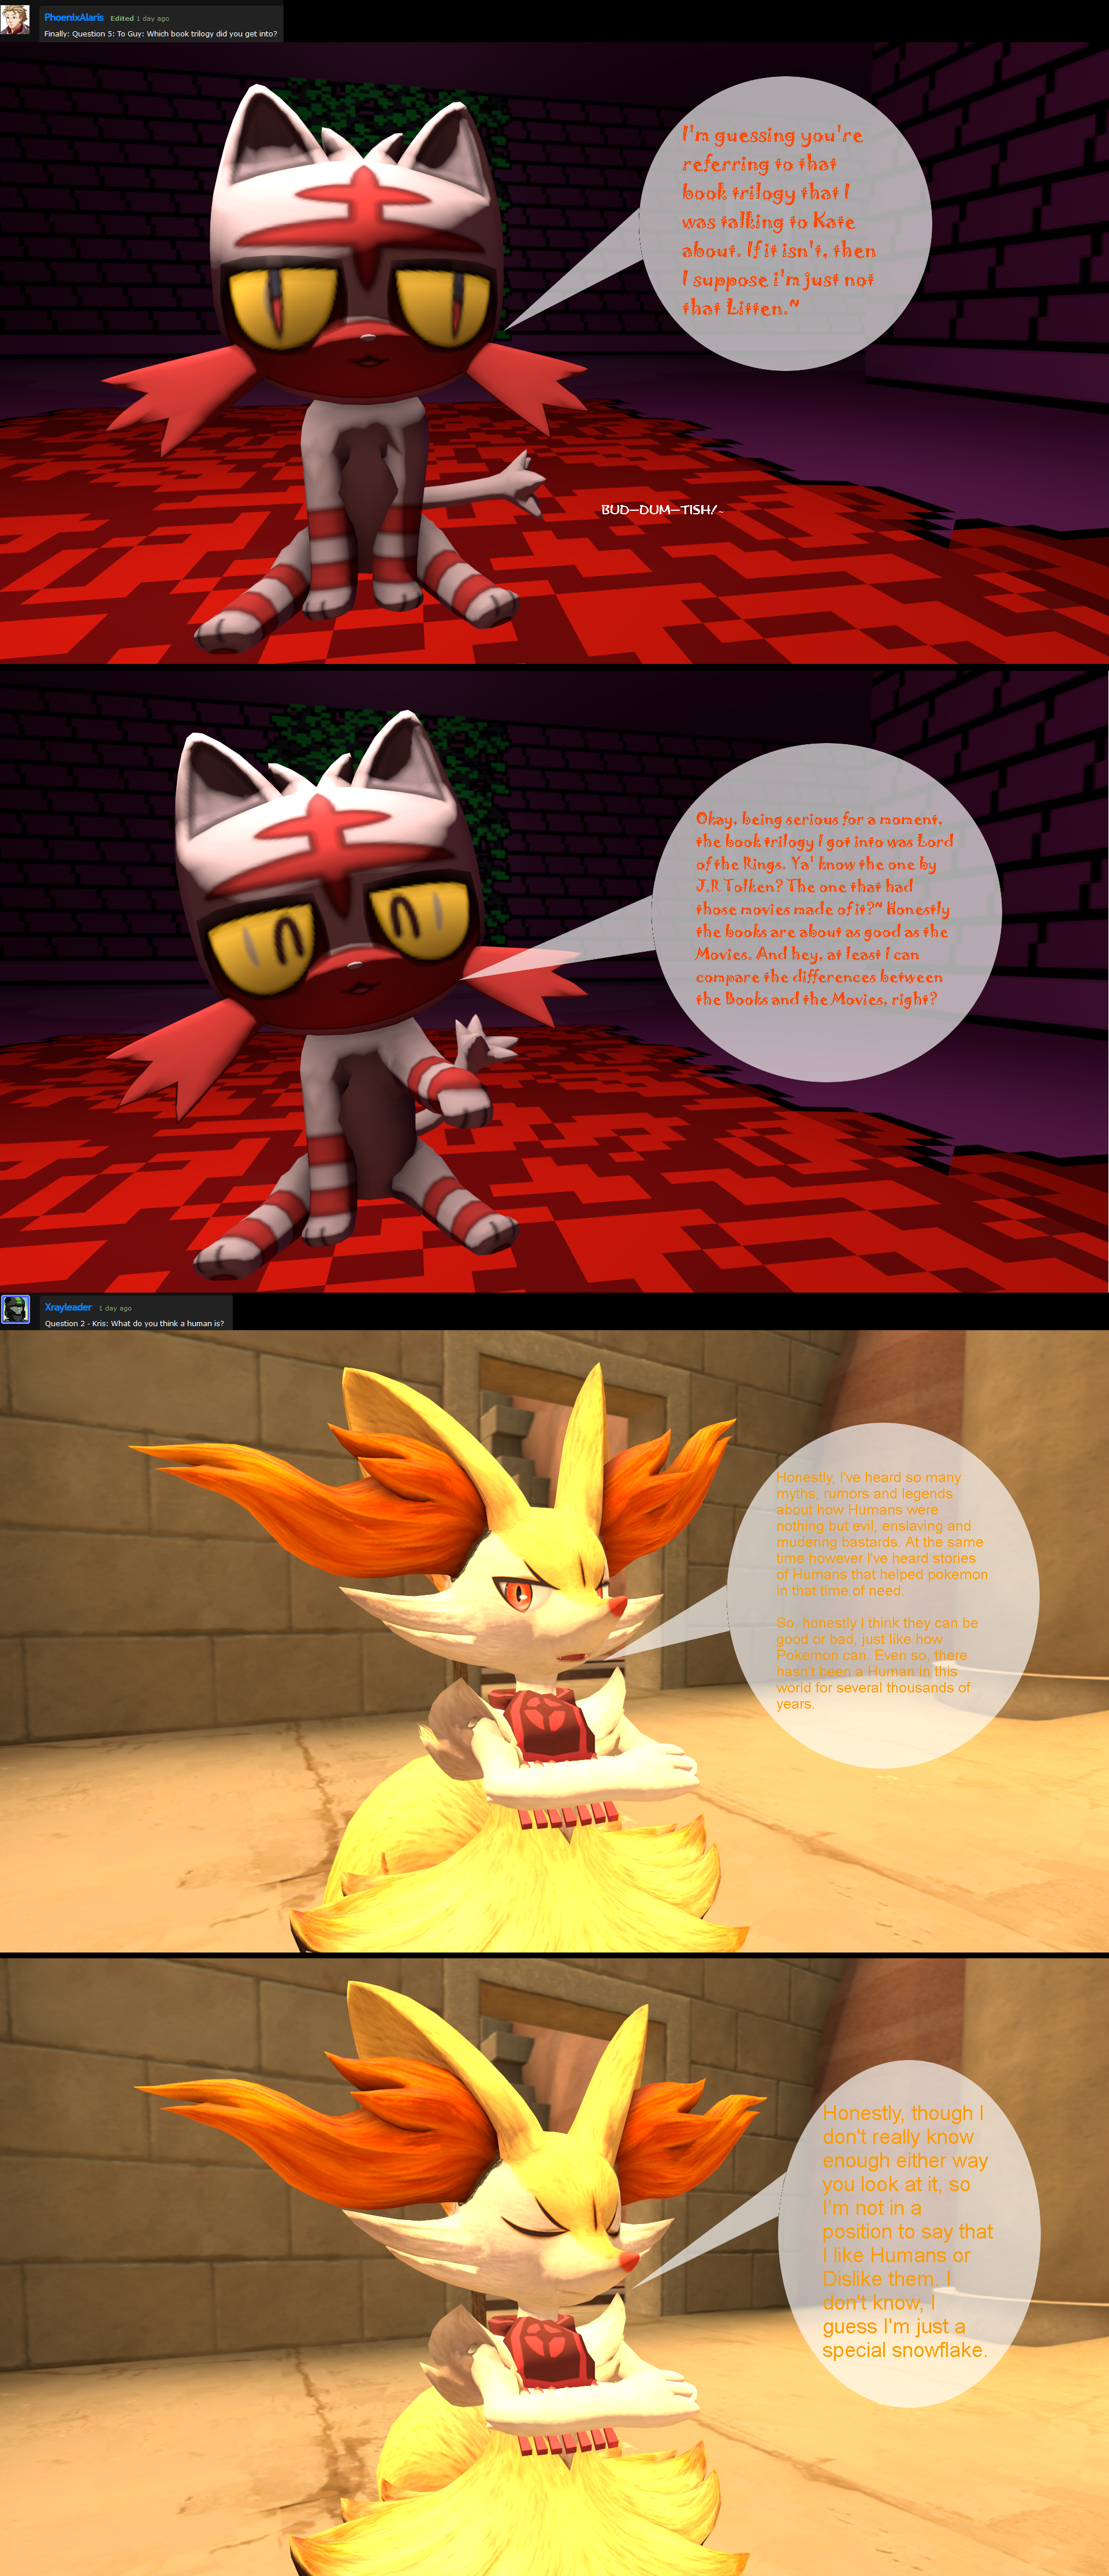 SFM} Questions and Answers #1 Responses 5 by AuraBraixen4412